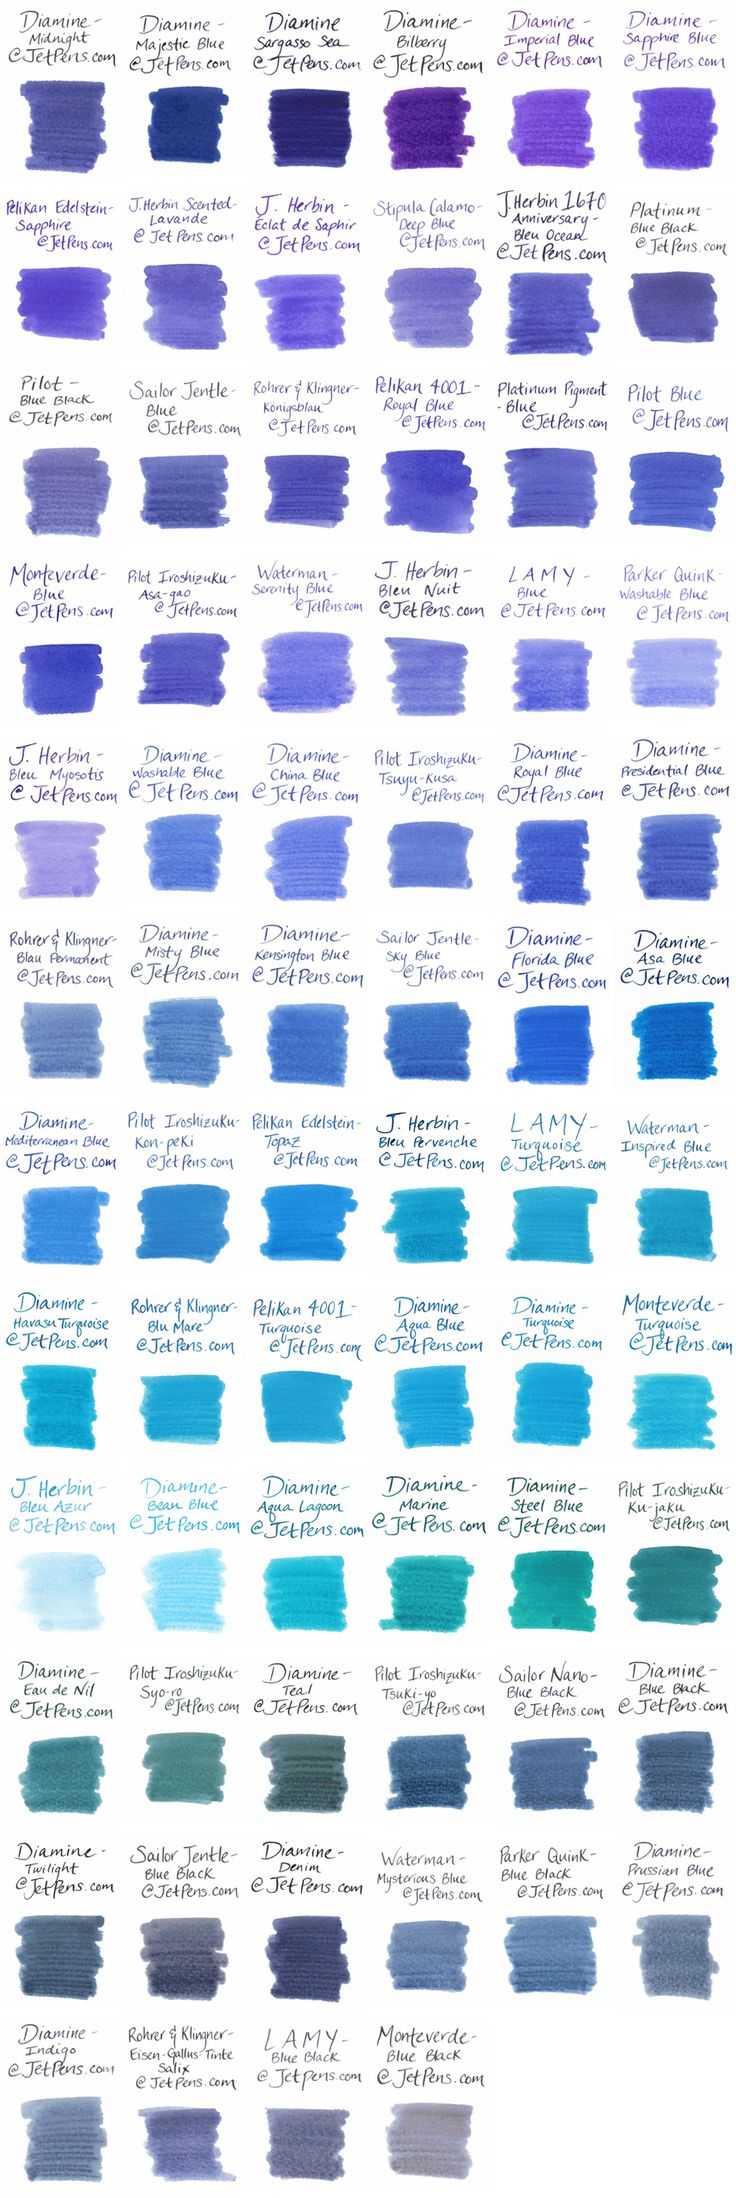 I like blue ink the best in Fountain Pens. Back to the roots. - Blue Fountain Pen Ink Comparison - JetPens.com